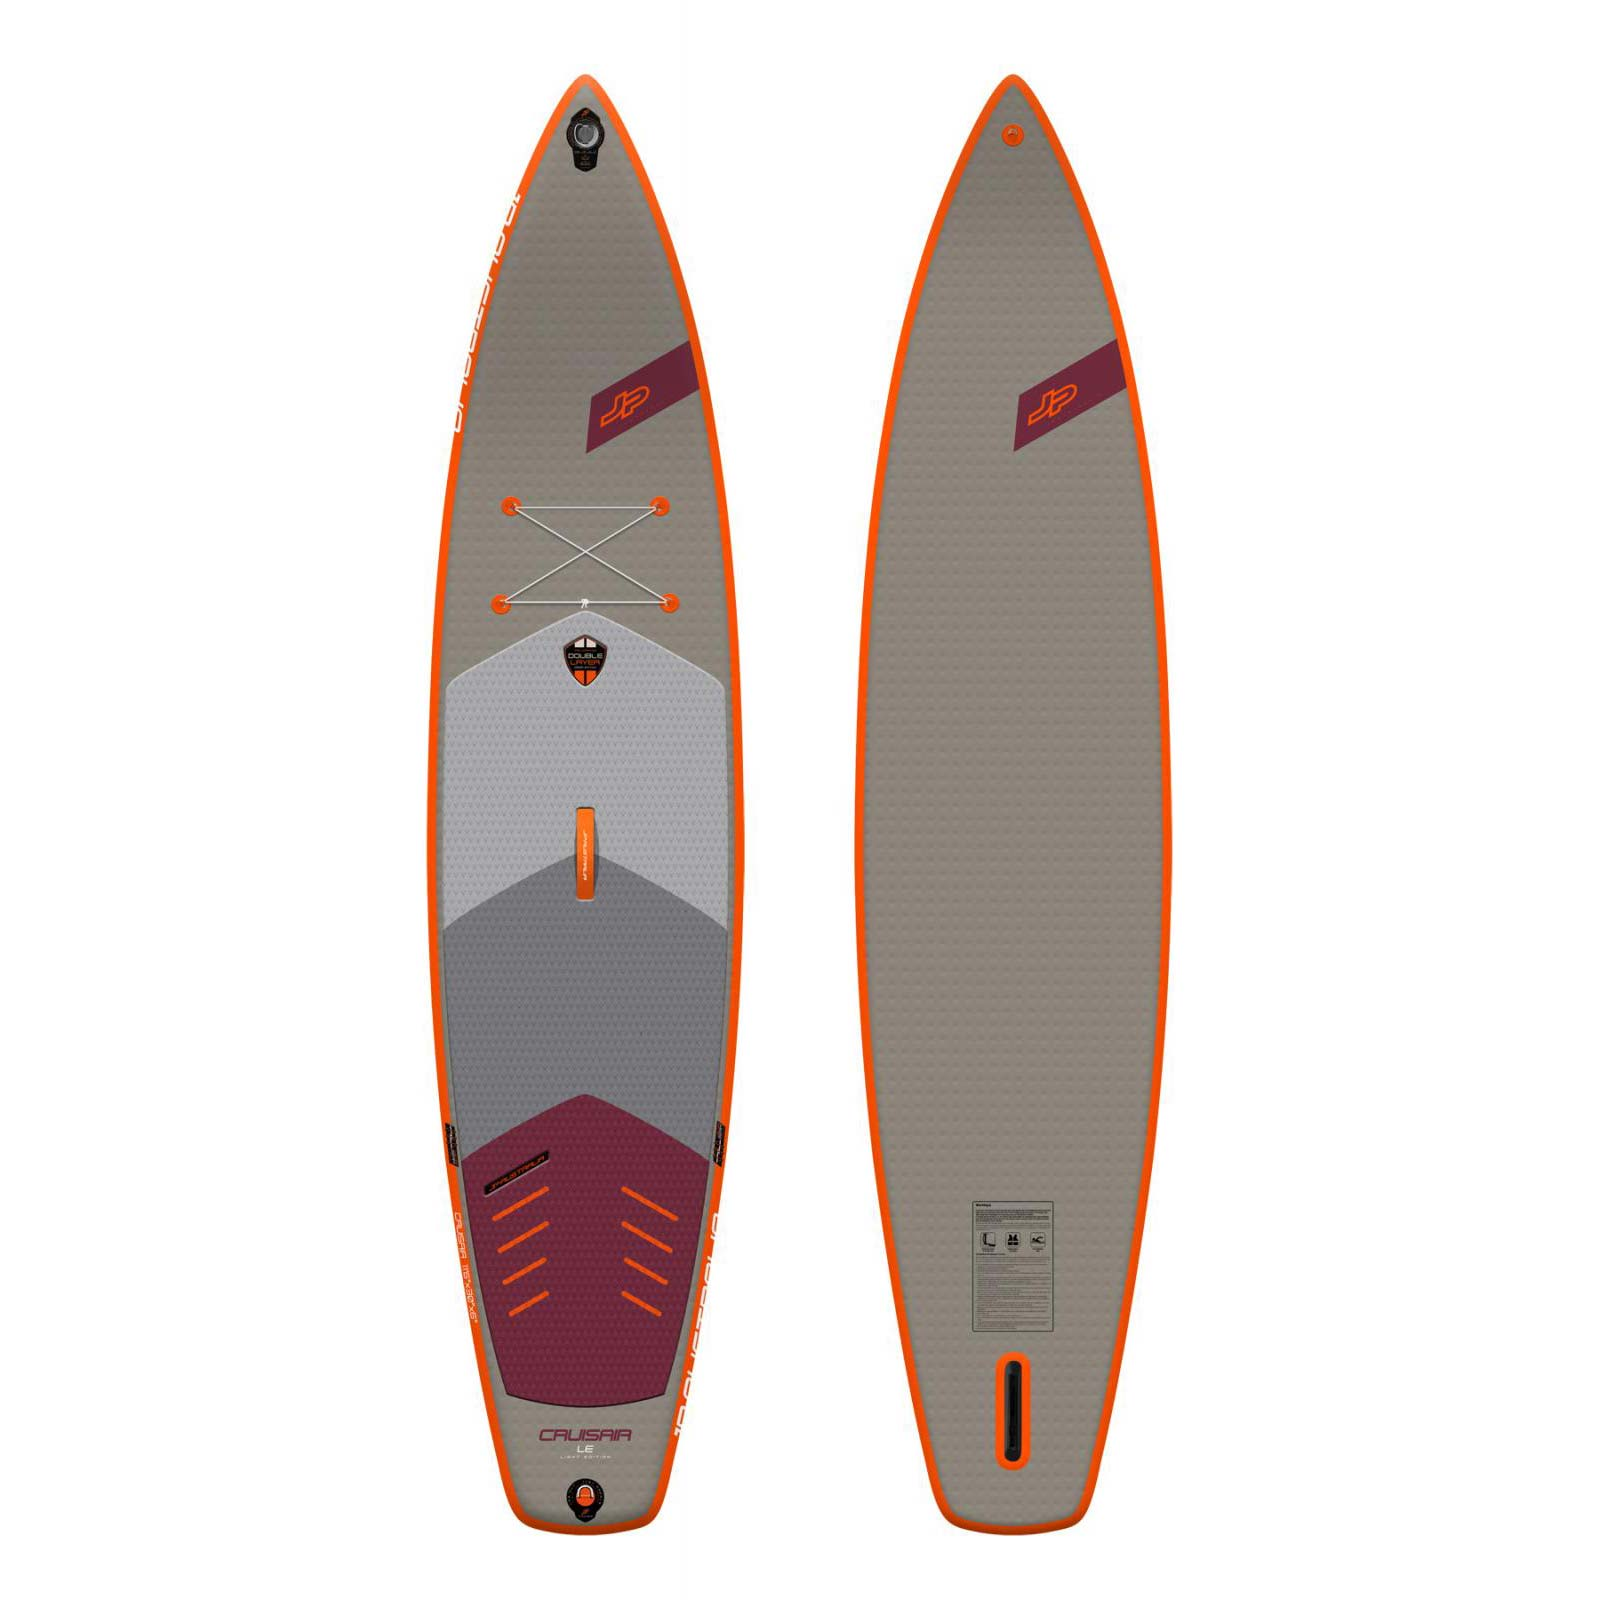 20 JP SUP CruisAir LE